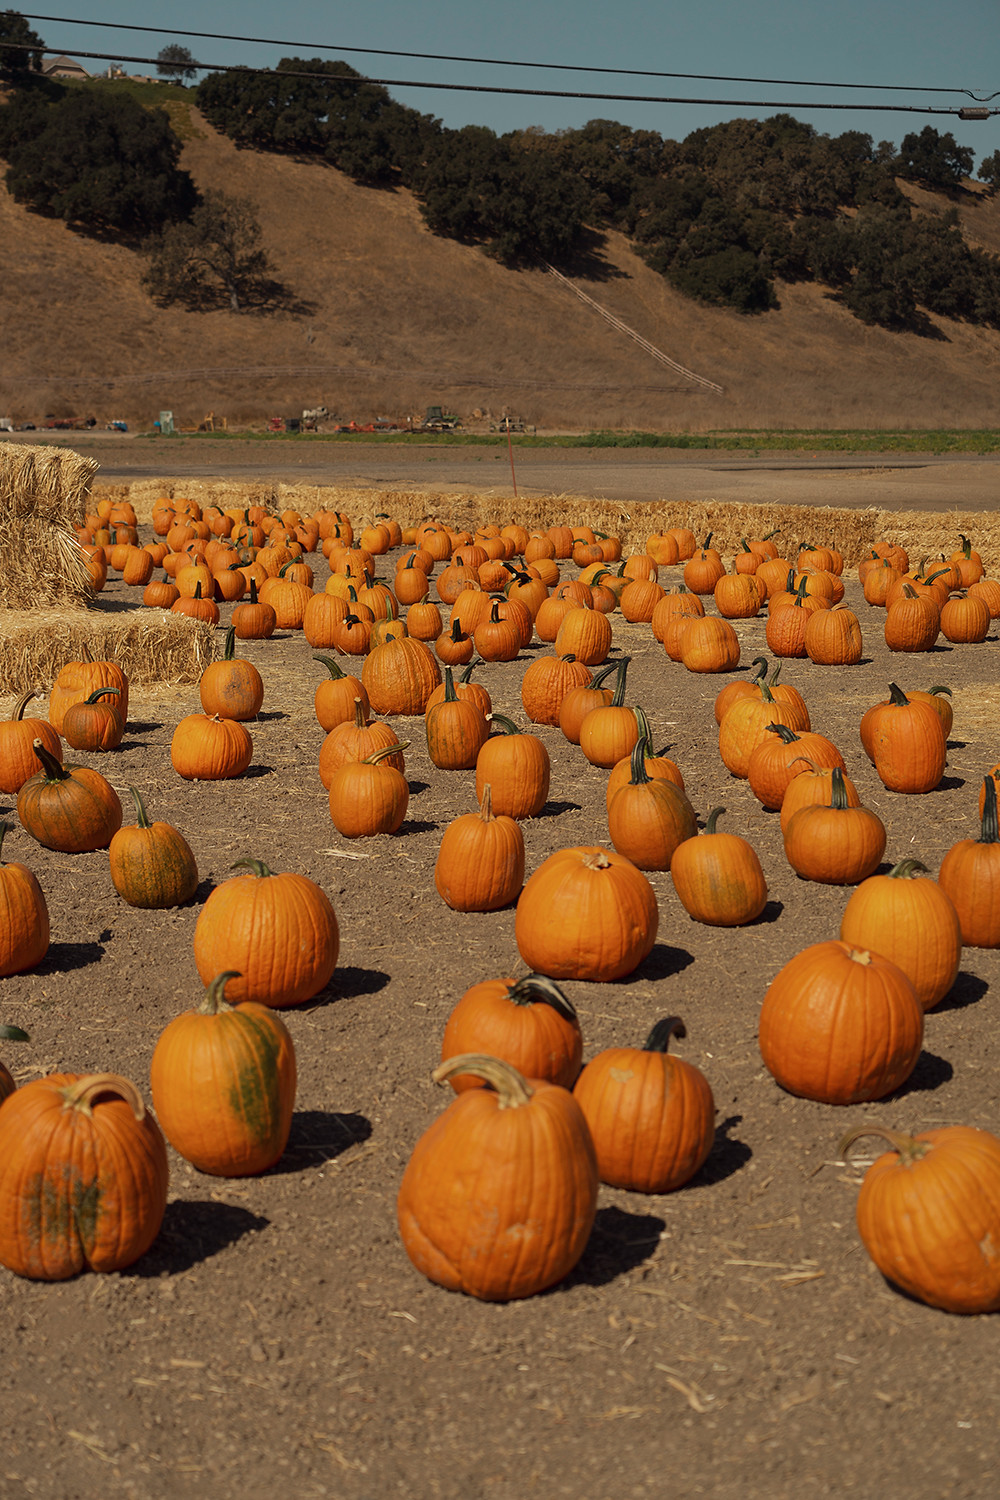 21solvang-pumpkinpatch-california-roadtrip-travel